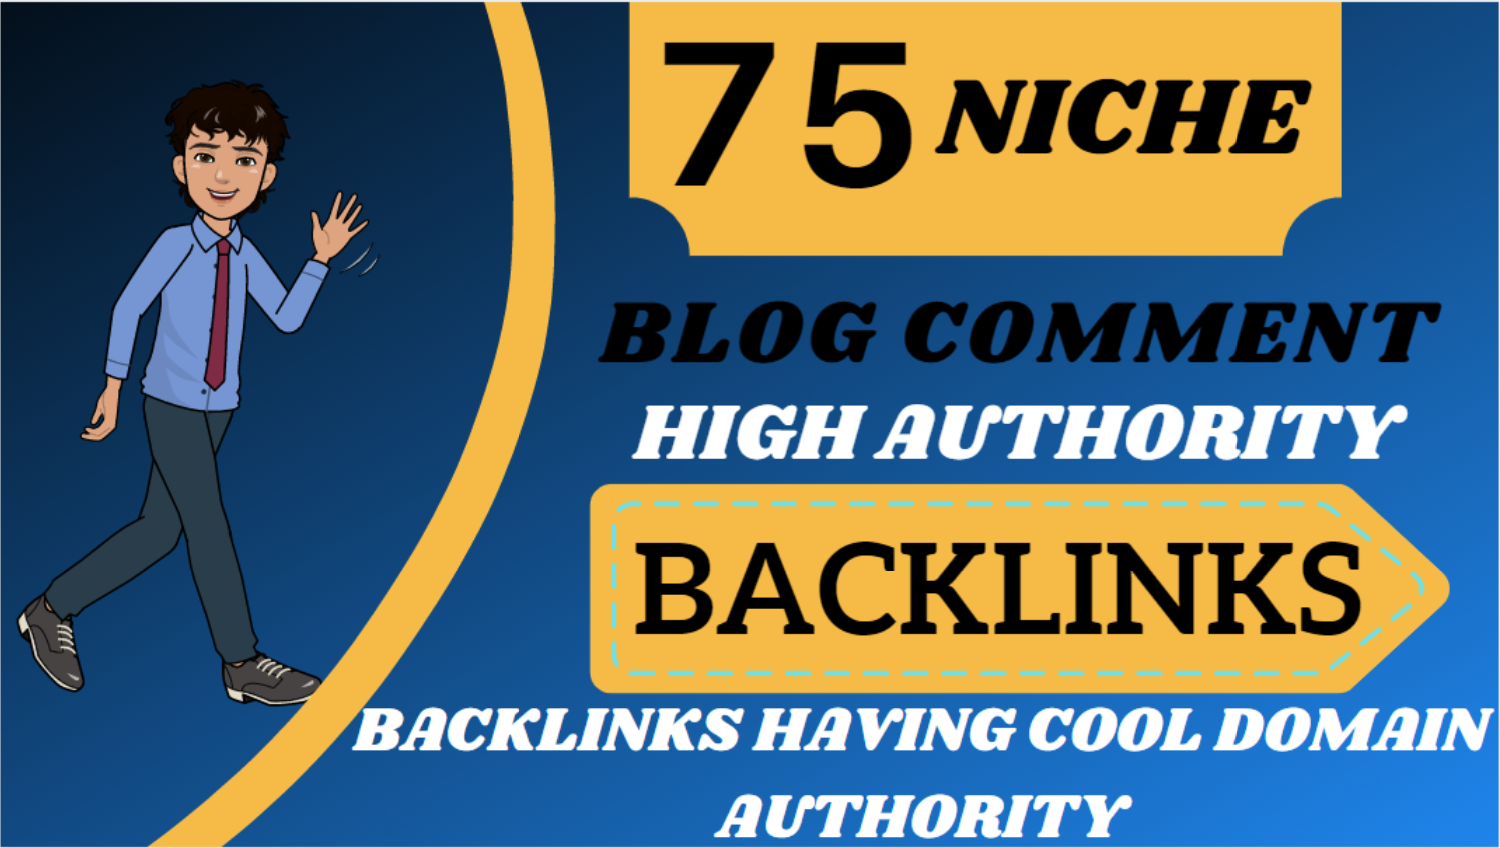 I will provide 75 top quality niche related blog comments